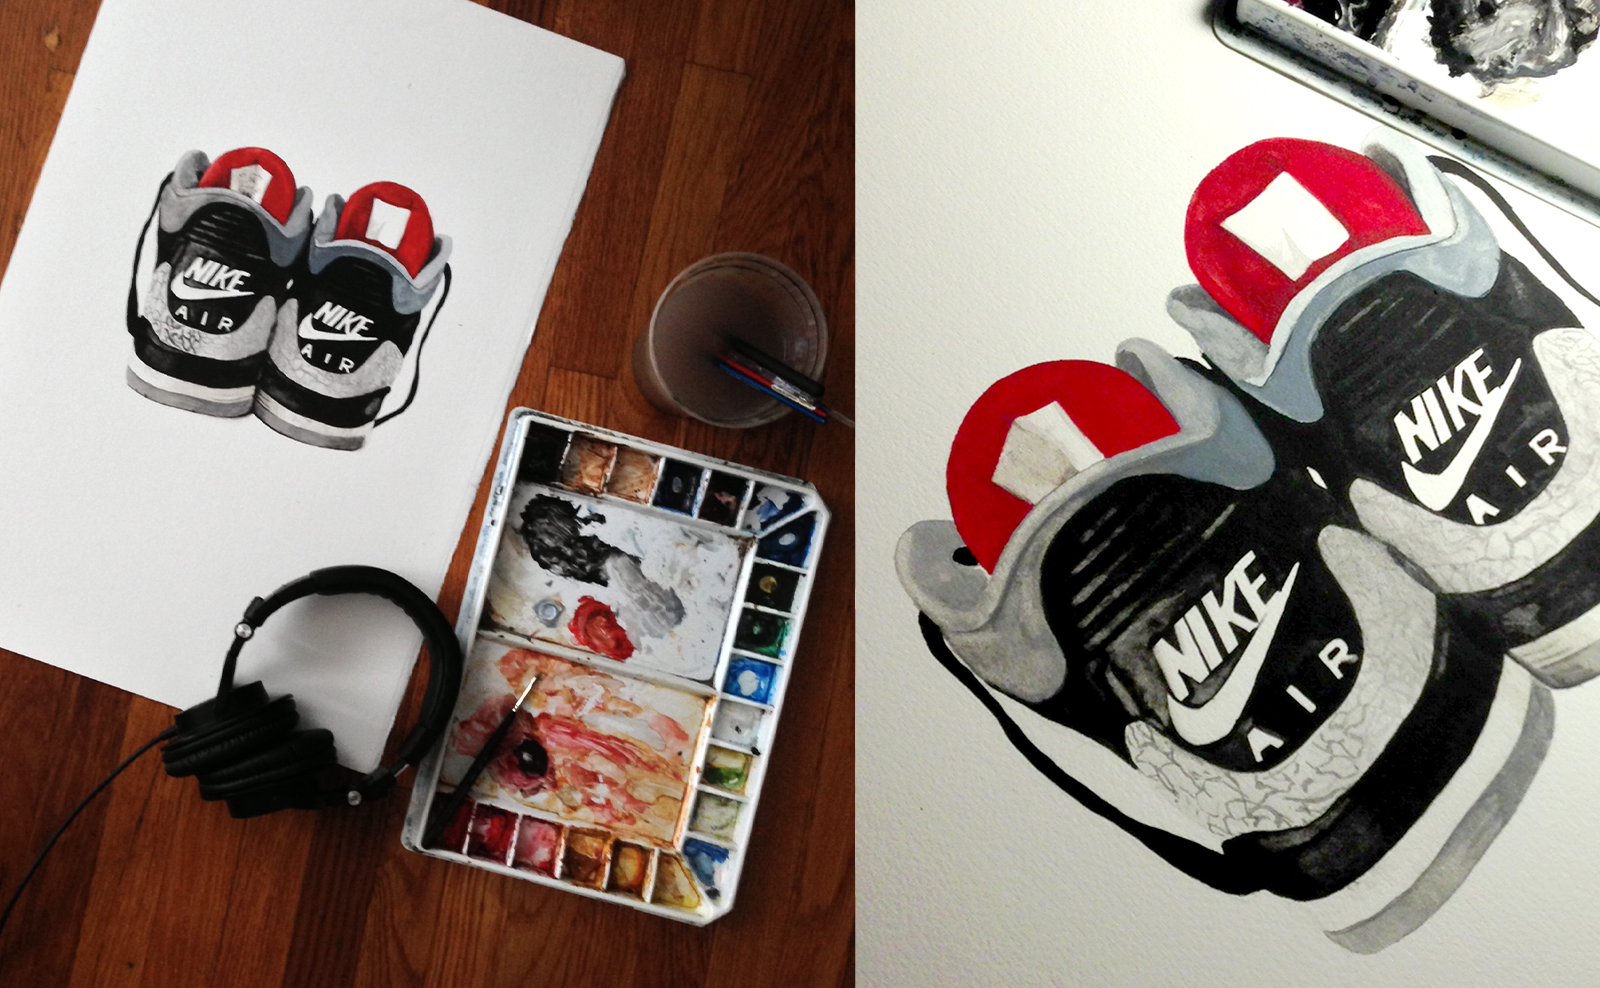 creativesession_keithmagruder_paintingjordan4